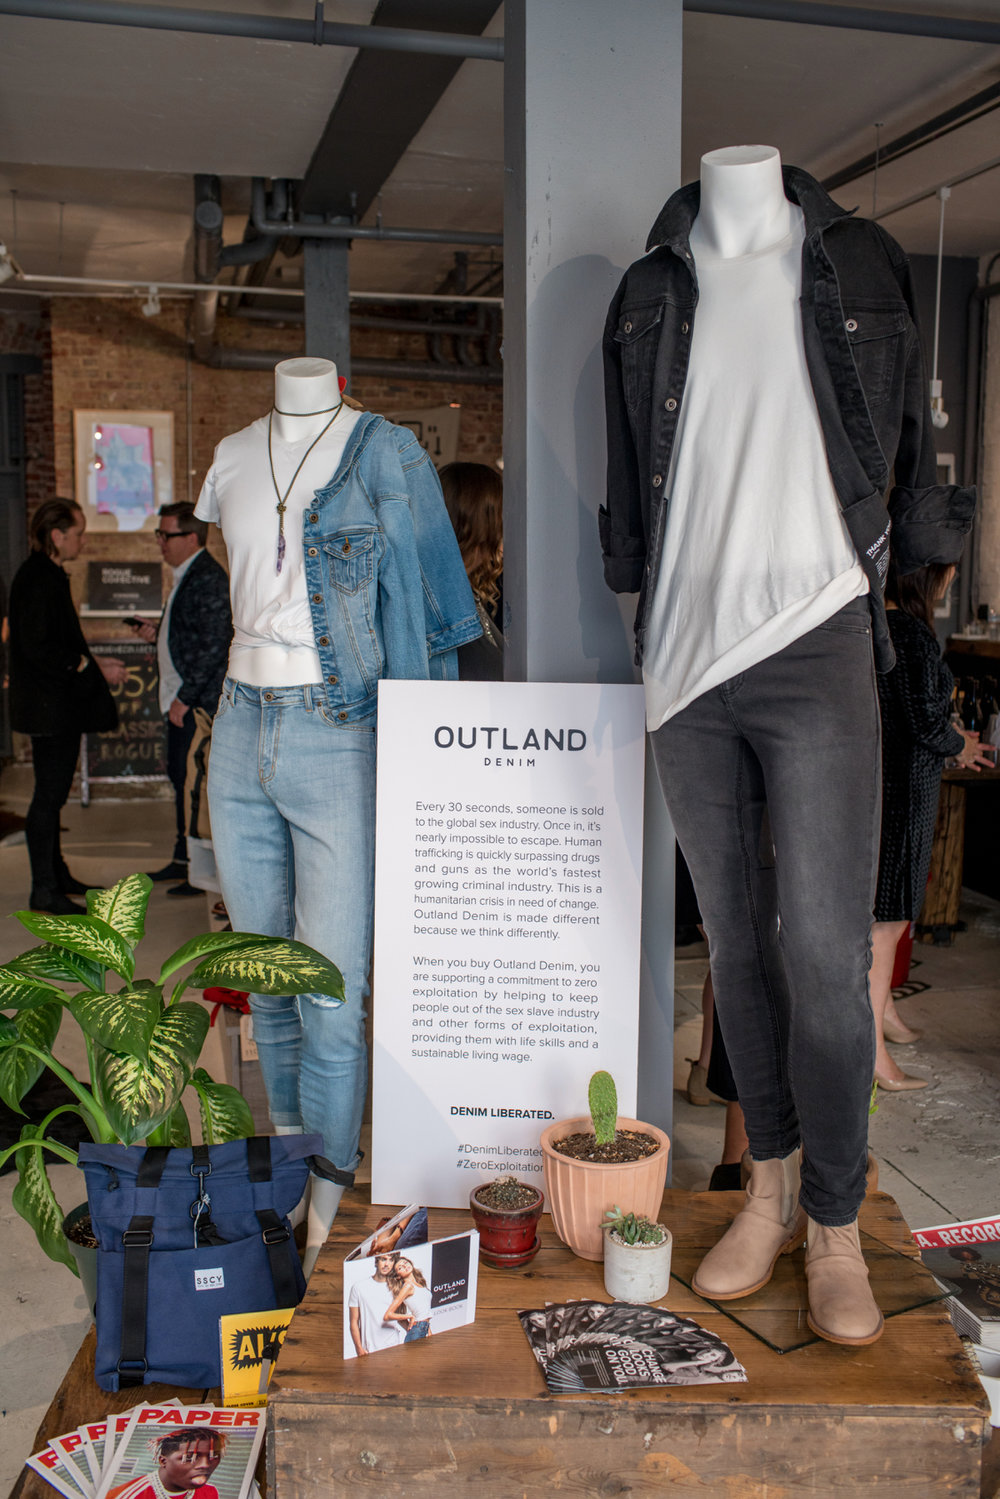 Outland_Denim-81 (Cameron Jordan's conflicted copy 2017-10-17).jpg